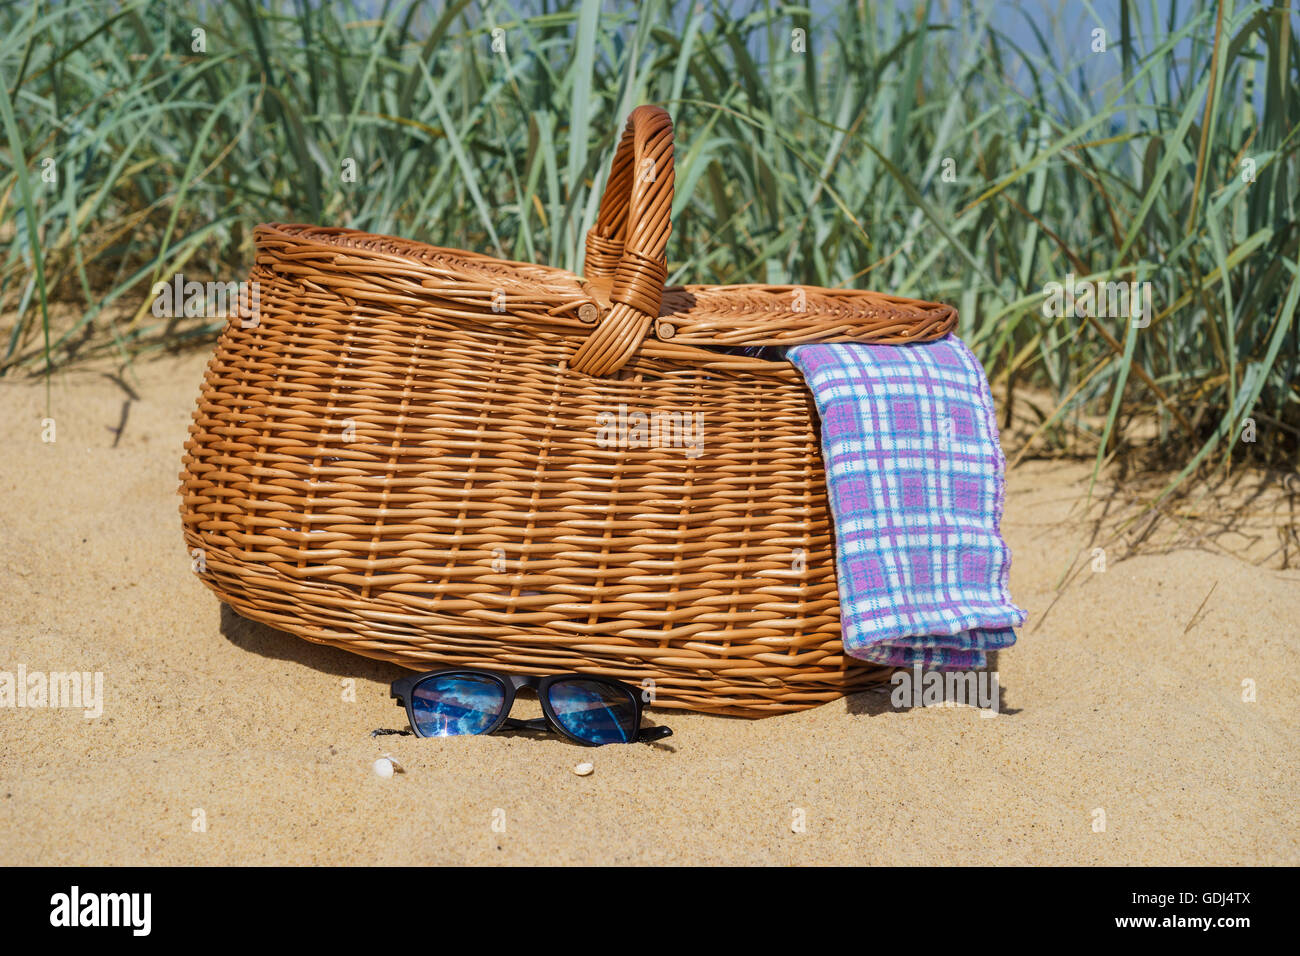 Picnic basket with blue white checkered napkin and sunglasses on sandy beach. Weekend break concept - Stock Image